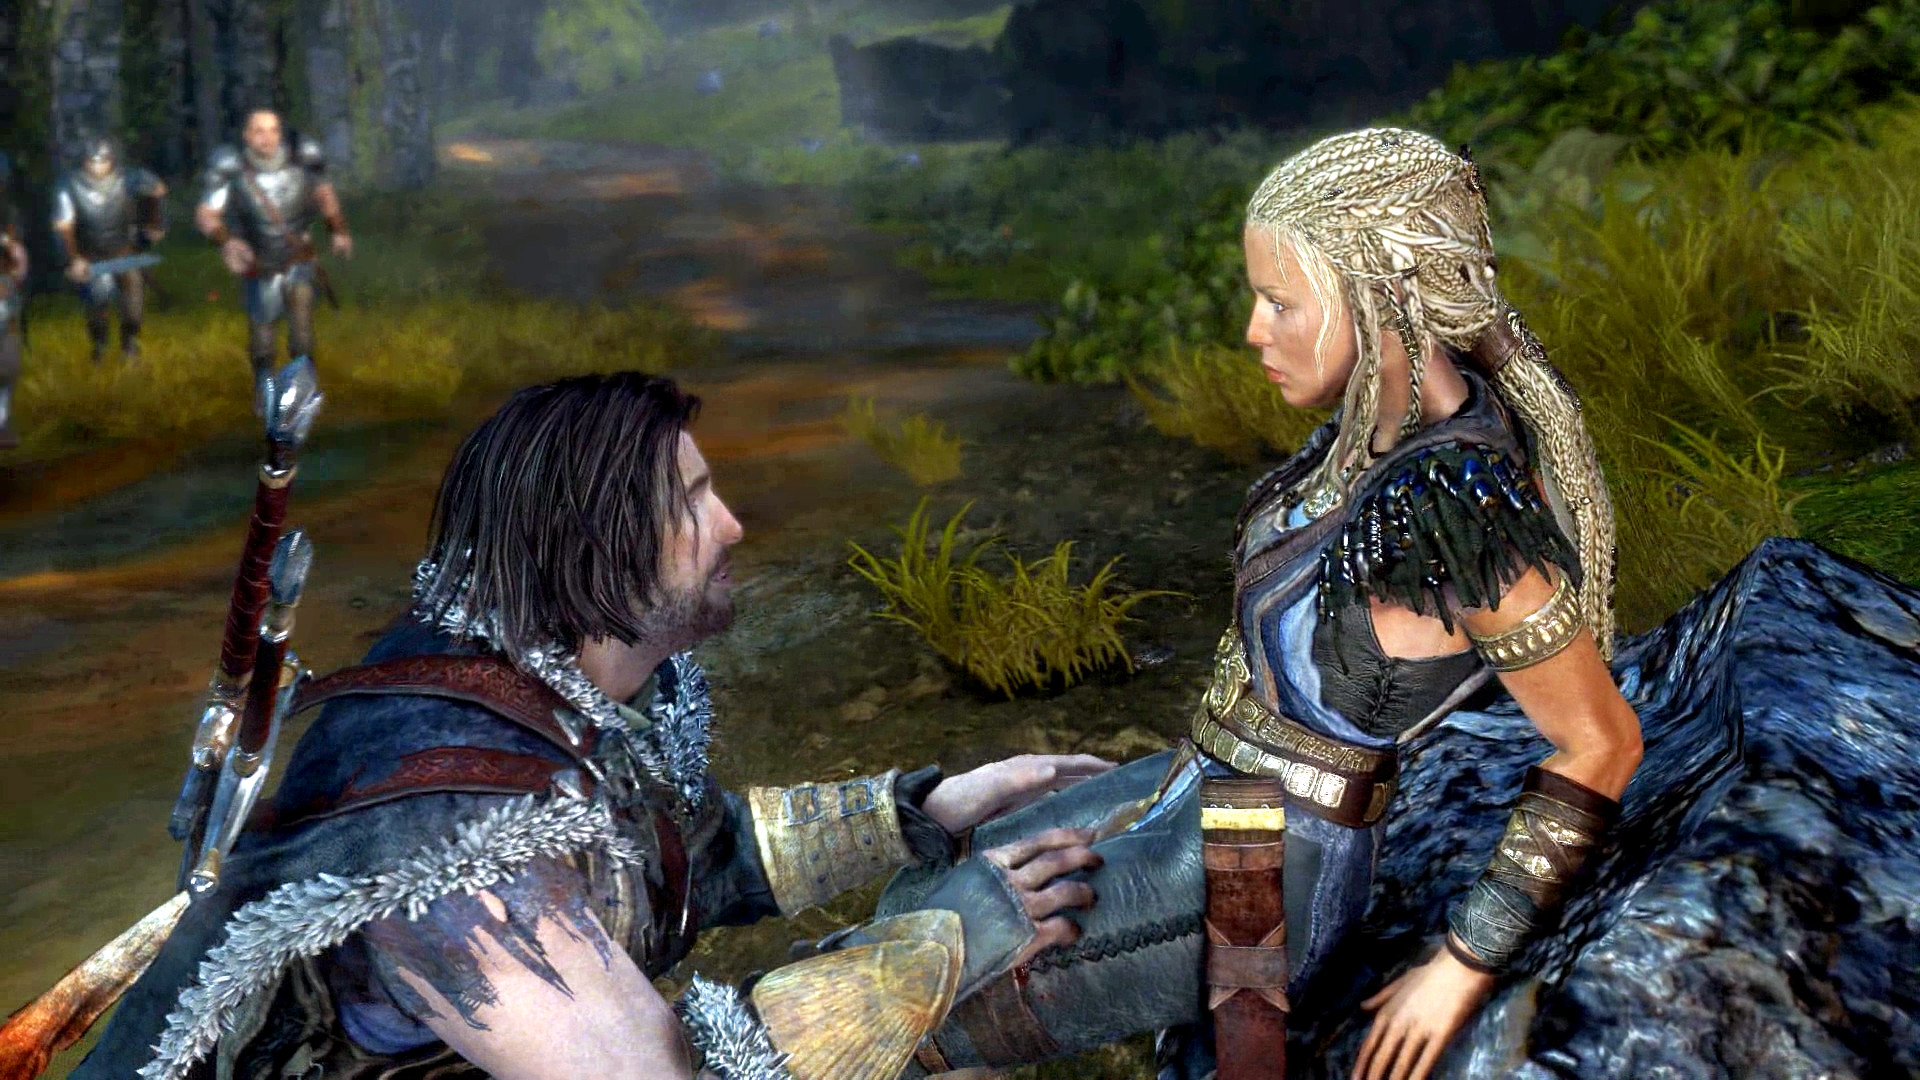 ShadowOfMordor 2016-10-25 20-10-09-56.jpg - Middle-earth: Shadow of Mordor